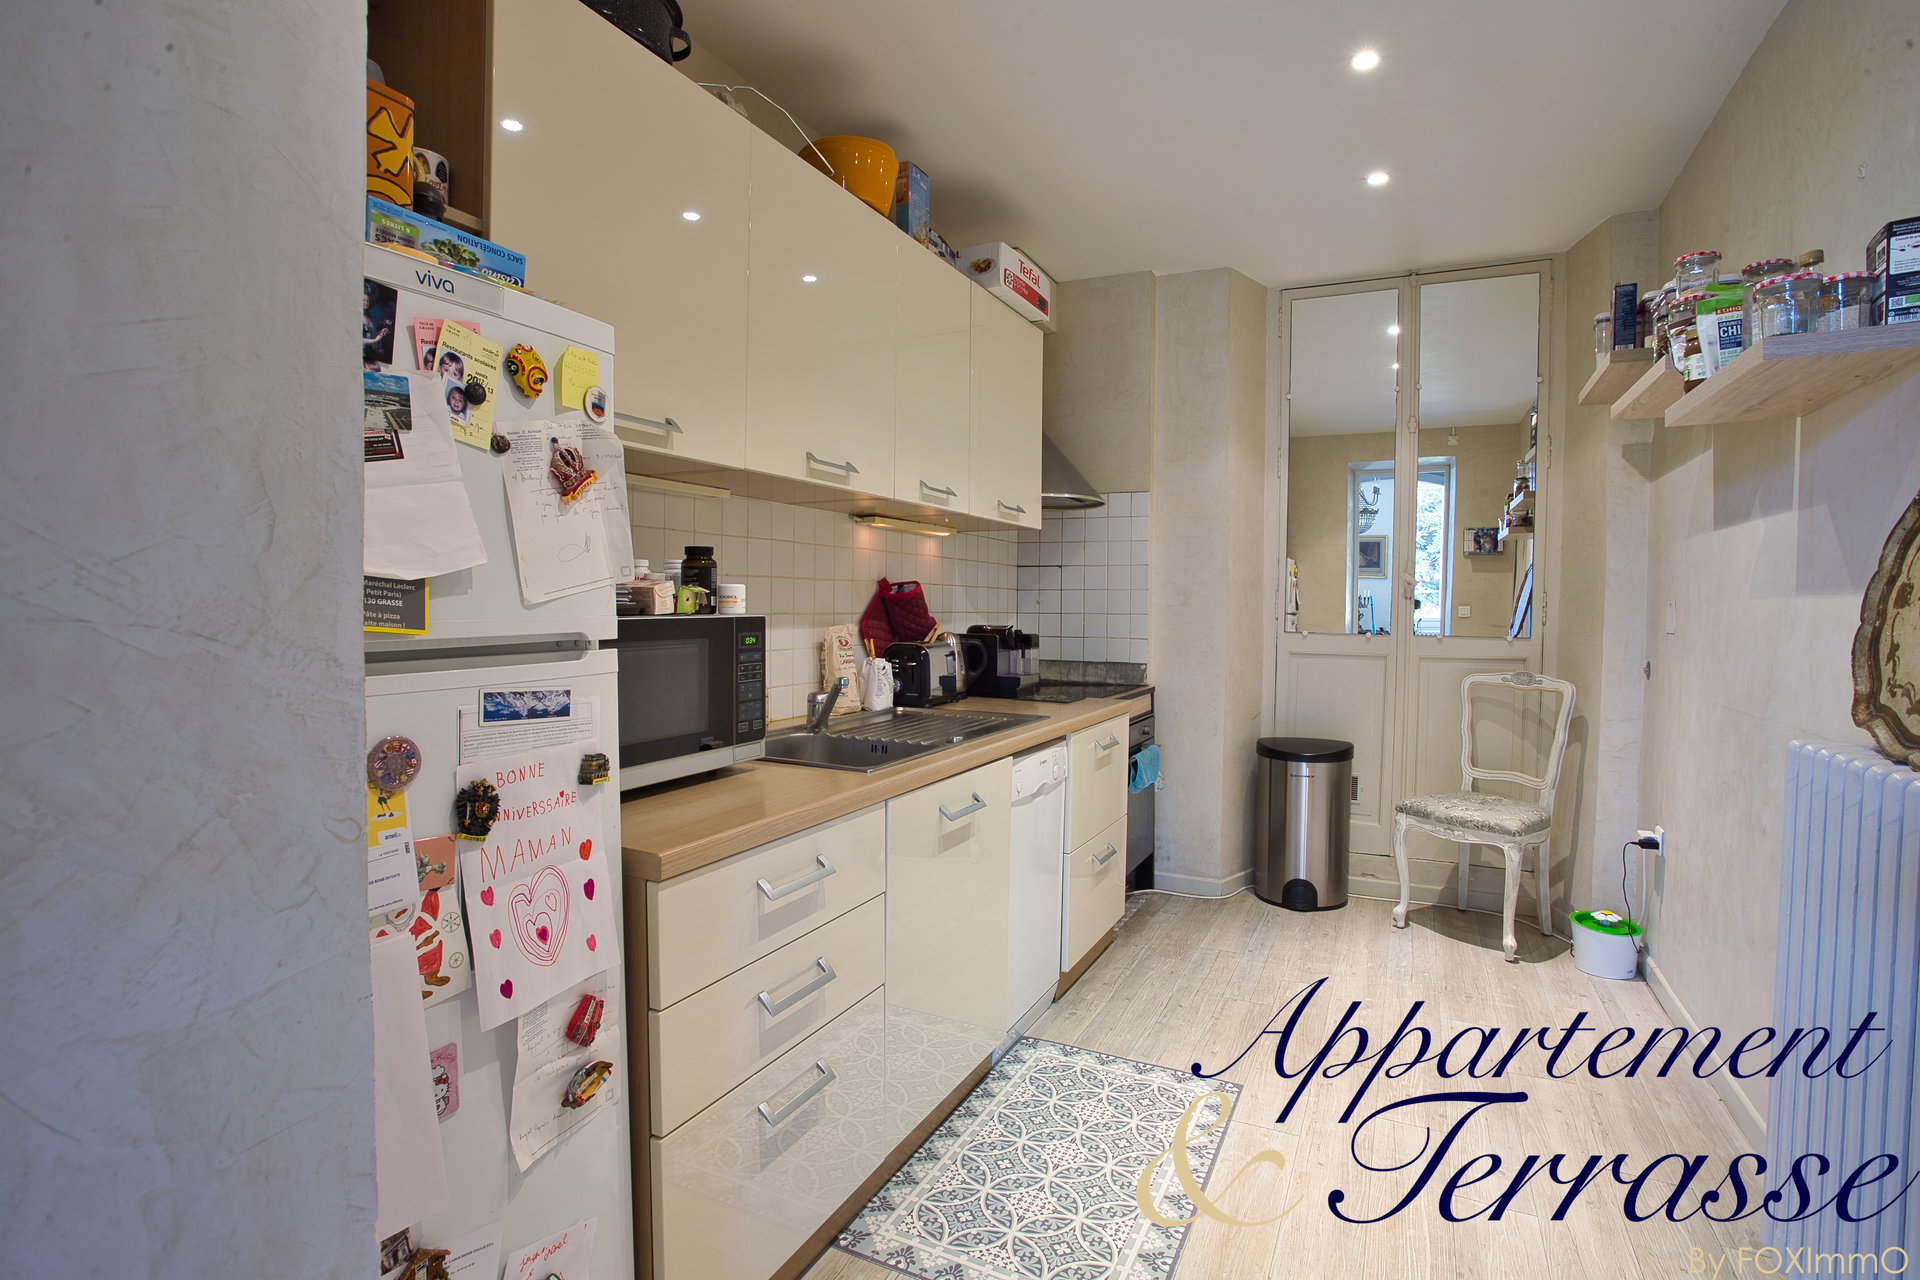 VENDU ! Appartement bourgeois 140 m² avec jardin privatif et place de parking